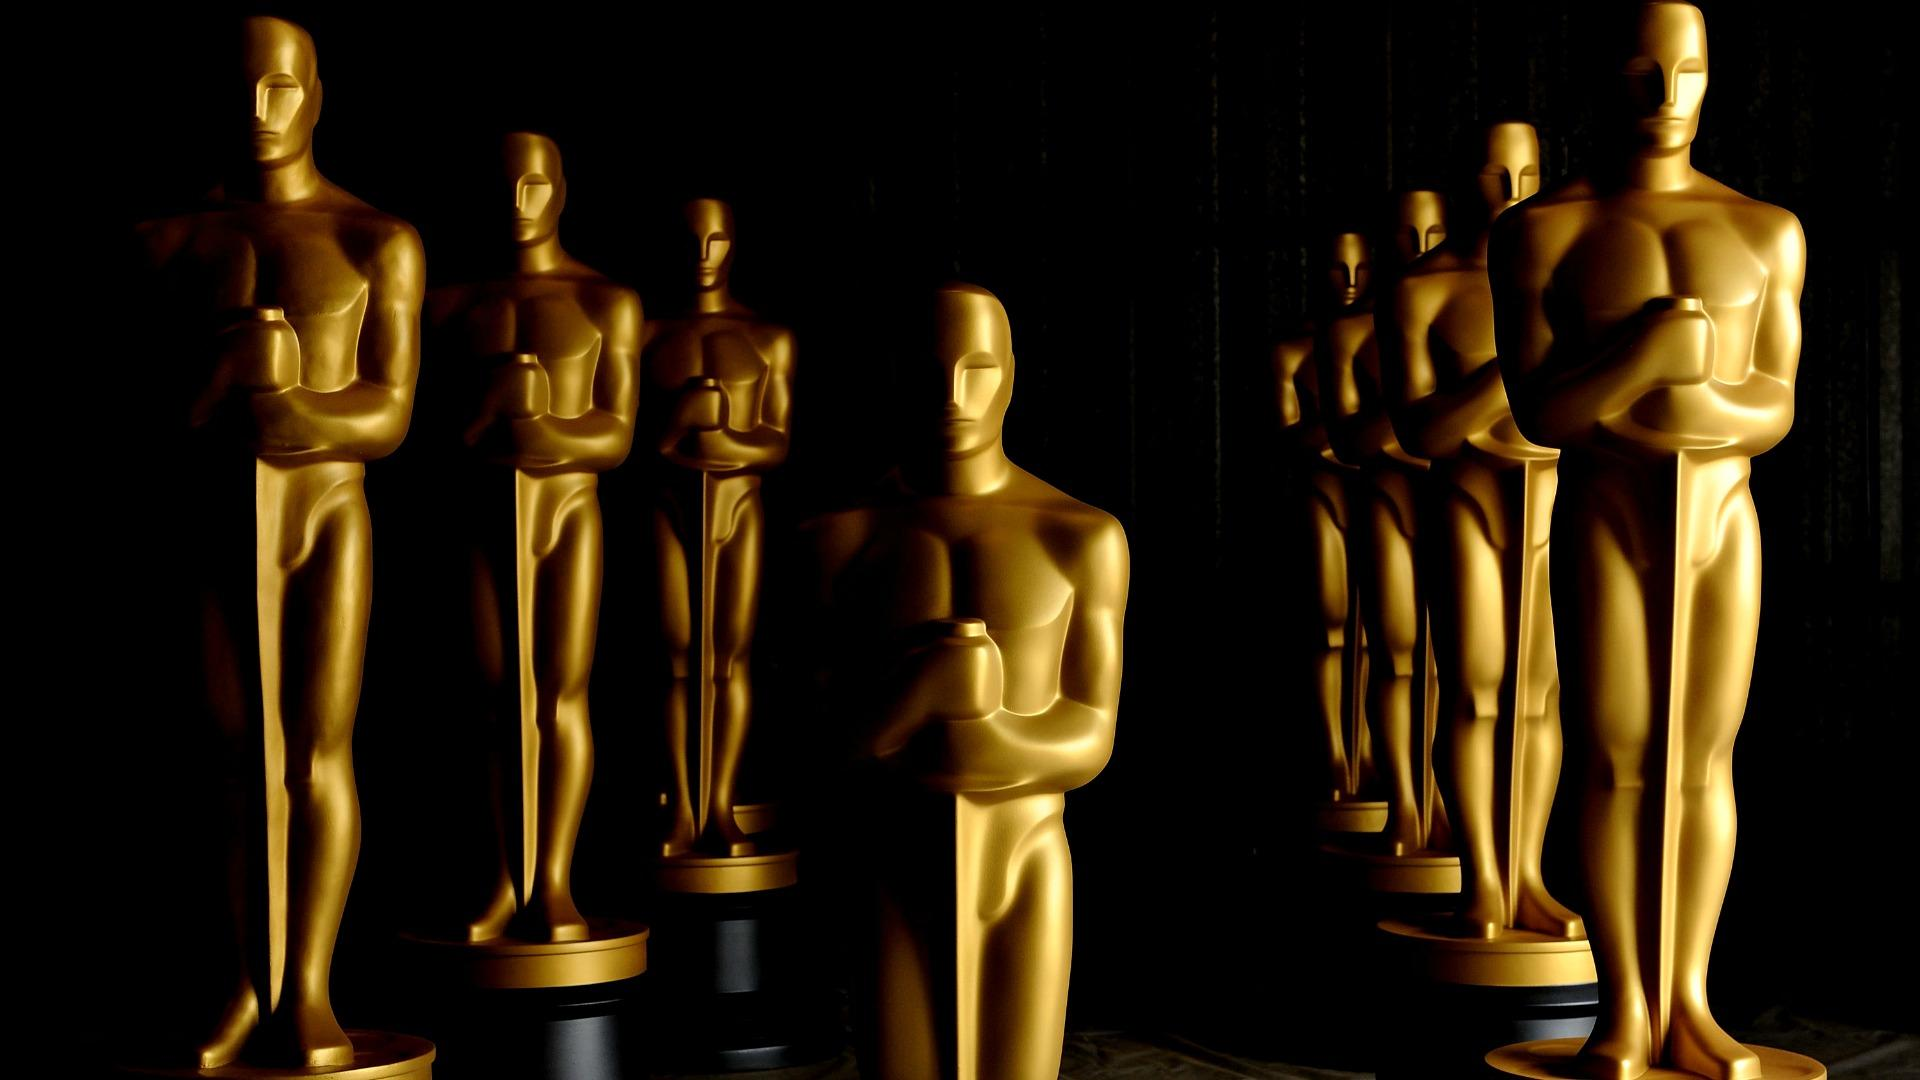 Academy Awards Statues